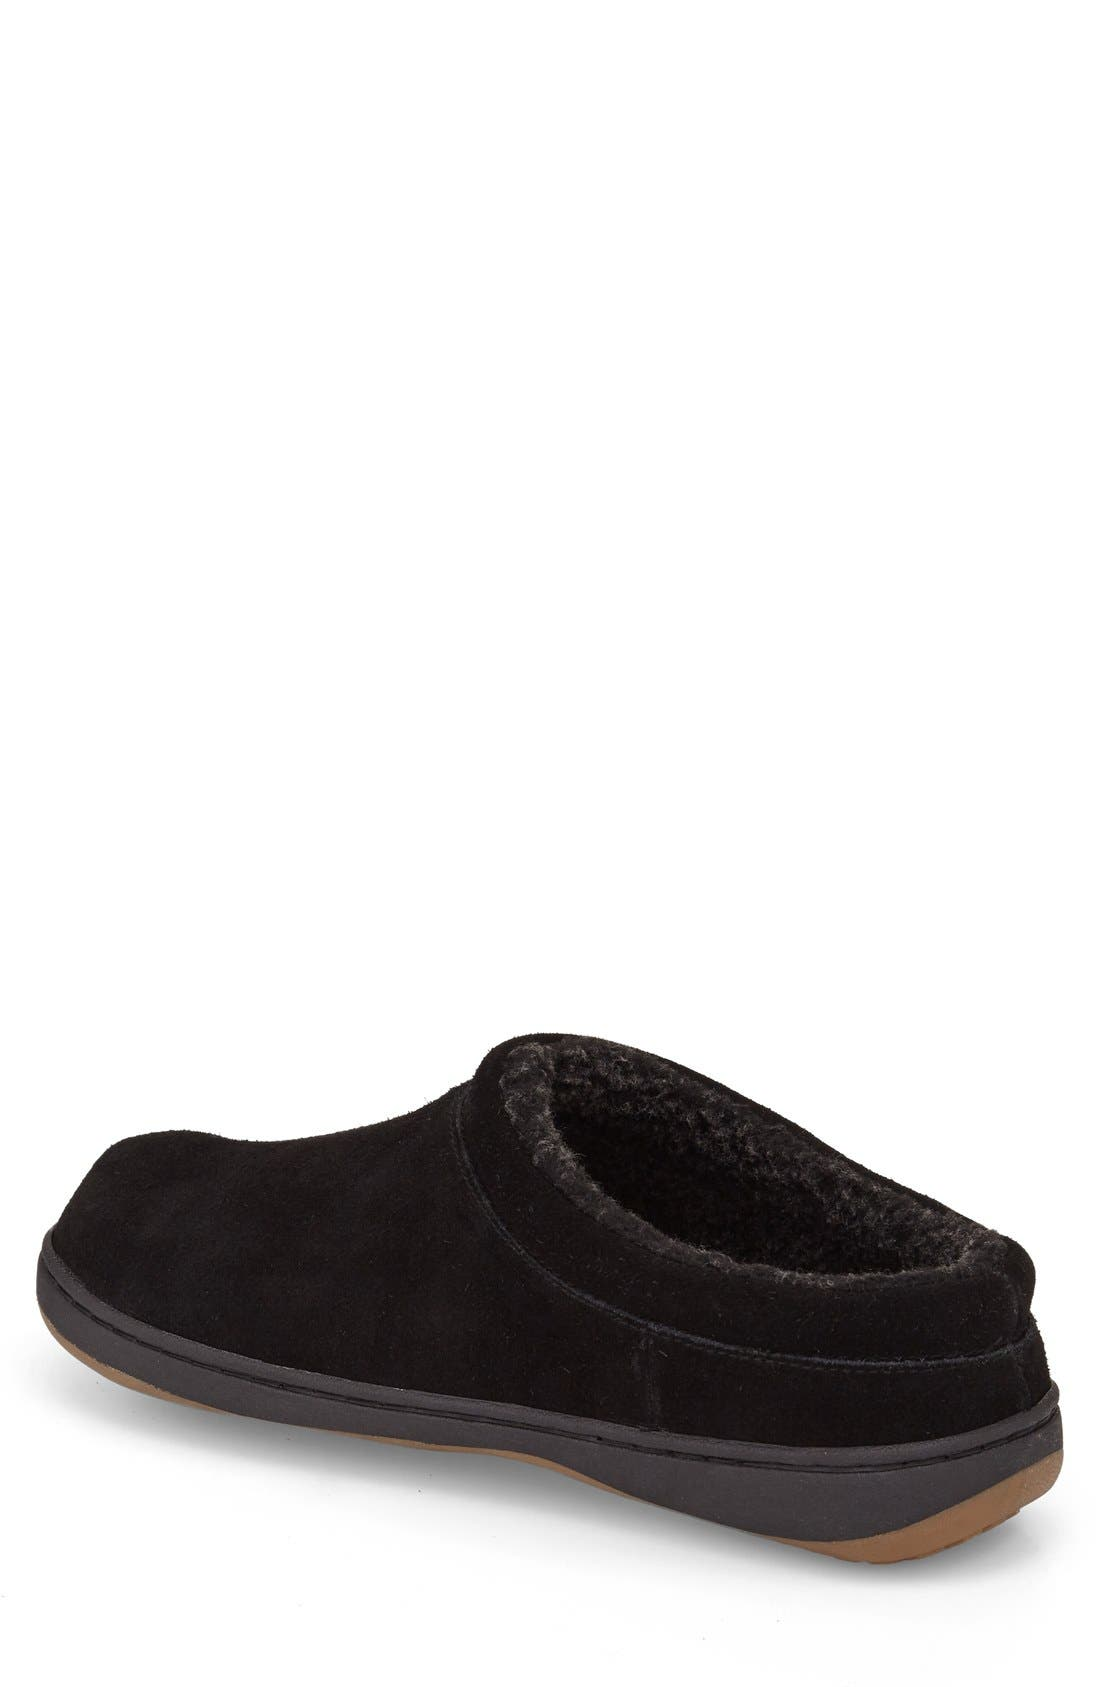 Arlow Slipper,                             Alternate thumbnail 2, color,                             BLACK